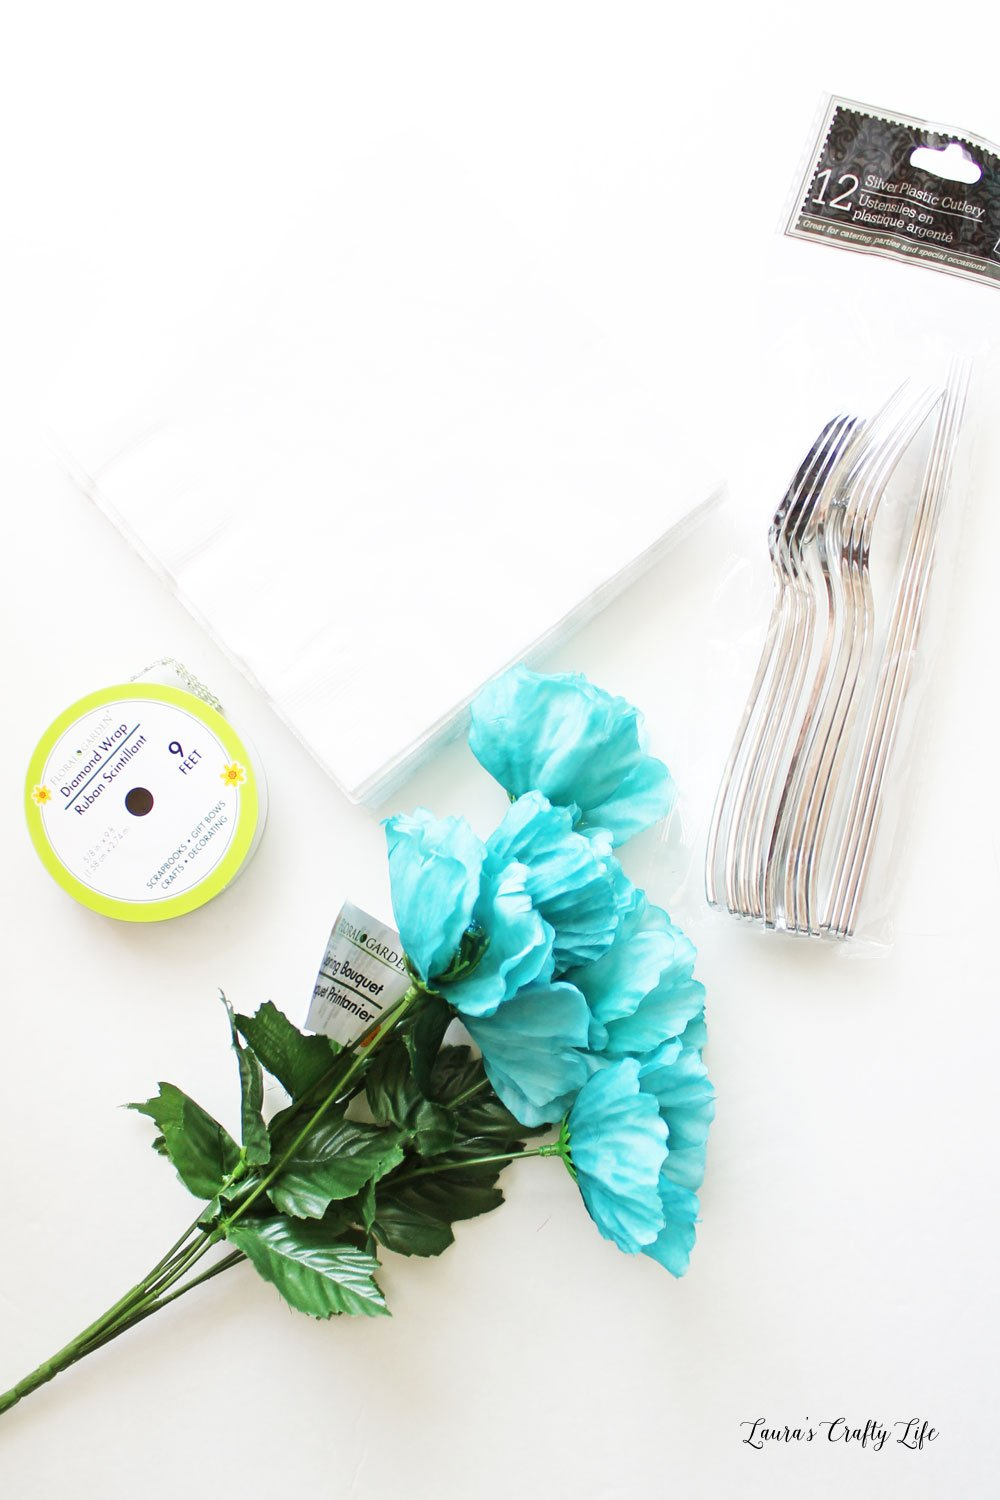 Supplies to make flower napkin ring